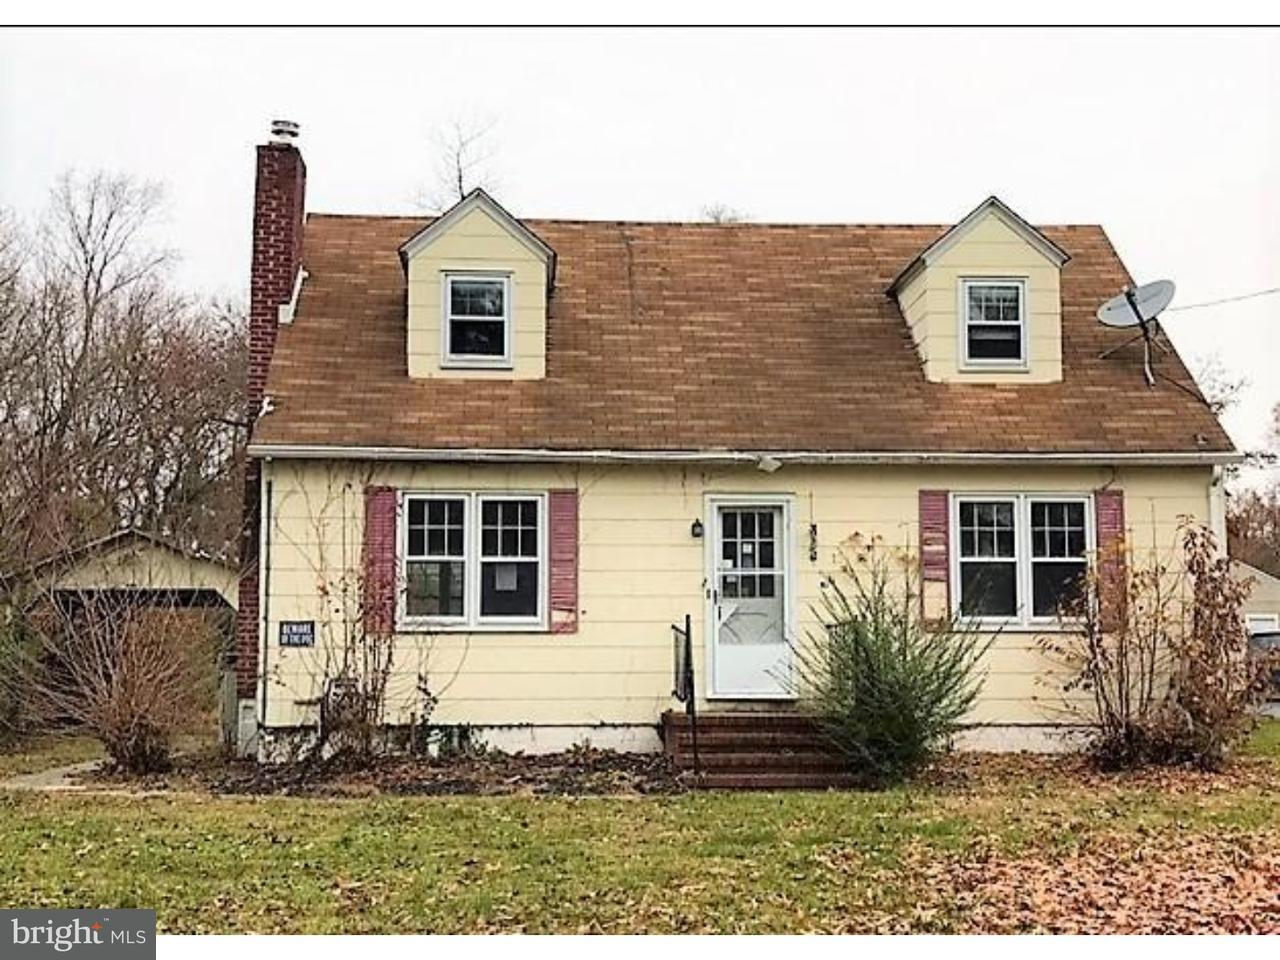 Local Real Estate: Homes for Sale — Hopewell, NJ — Coldwell Banker